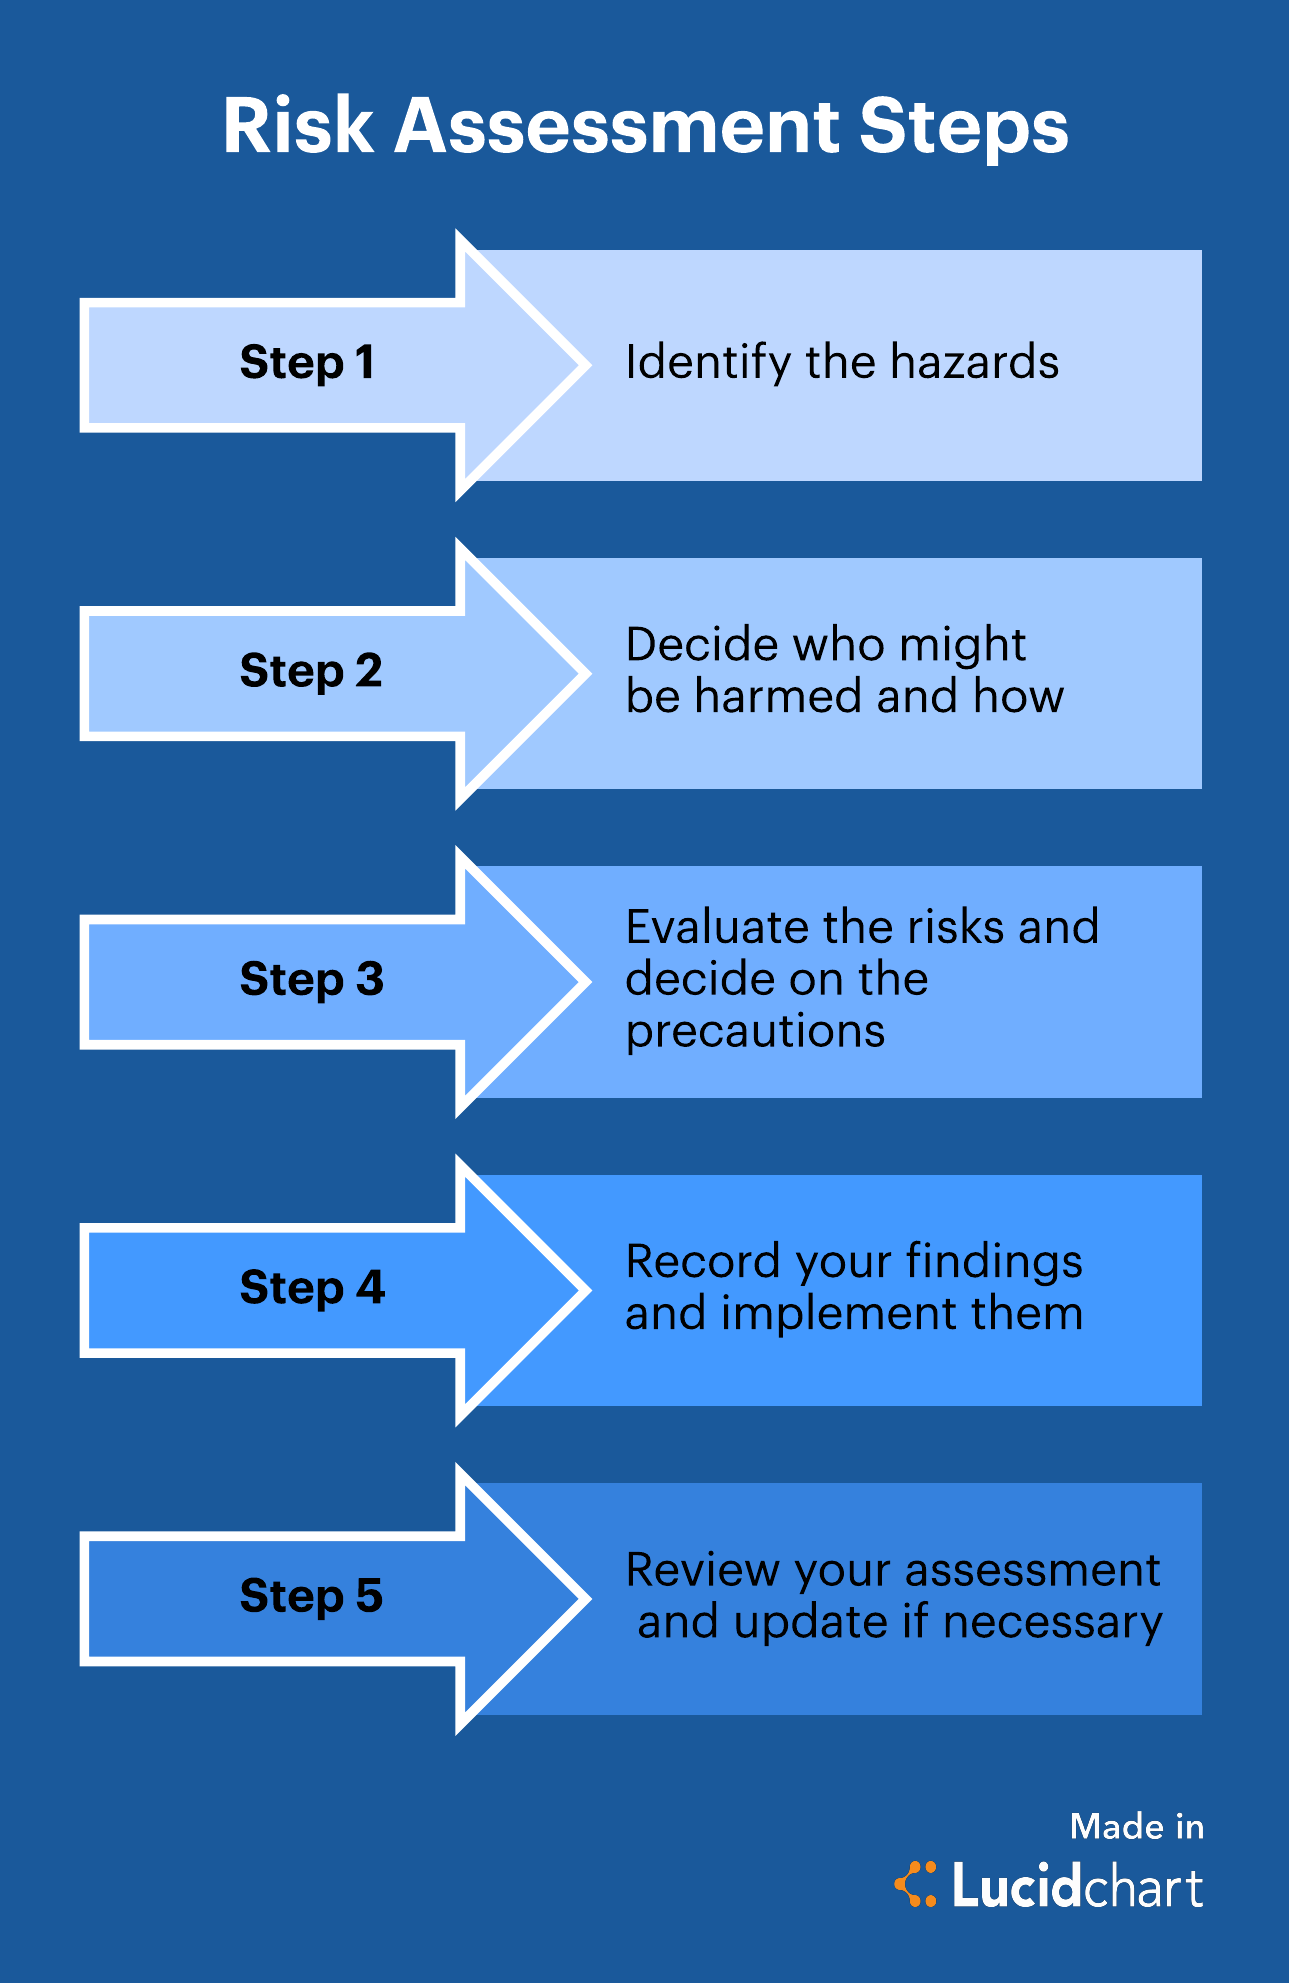 19 Awesome Risk Management Process Flow Diagram Design Ideas Http Bookingritzcarlton Info 19 Awesome Risk M Risk Management Assessment Management Techniques